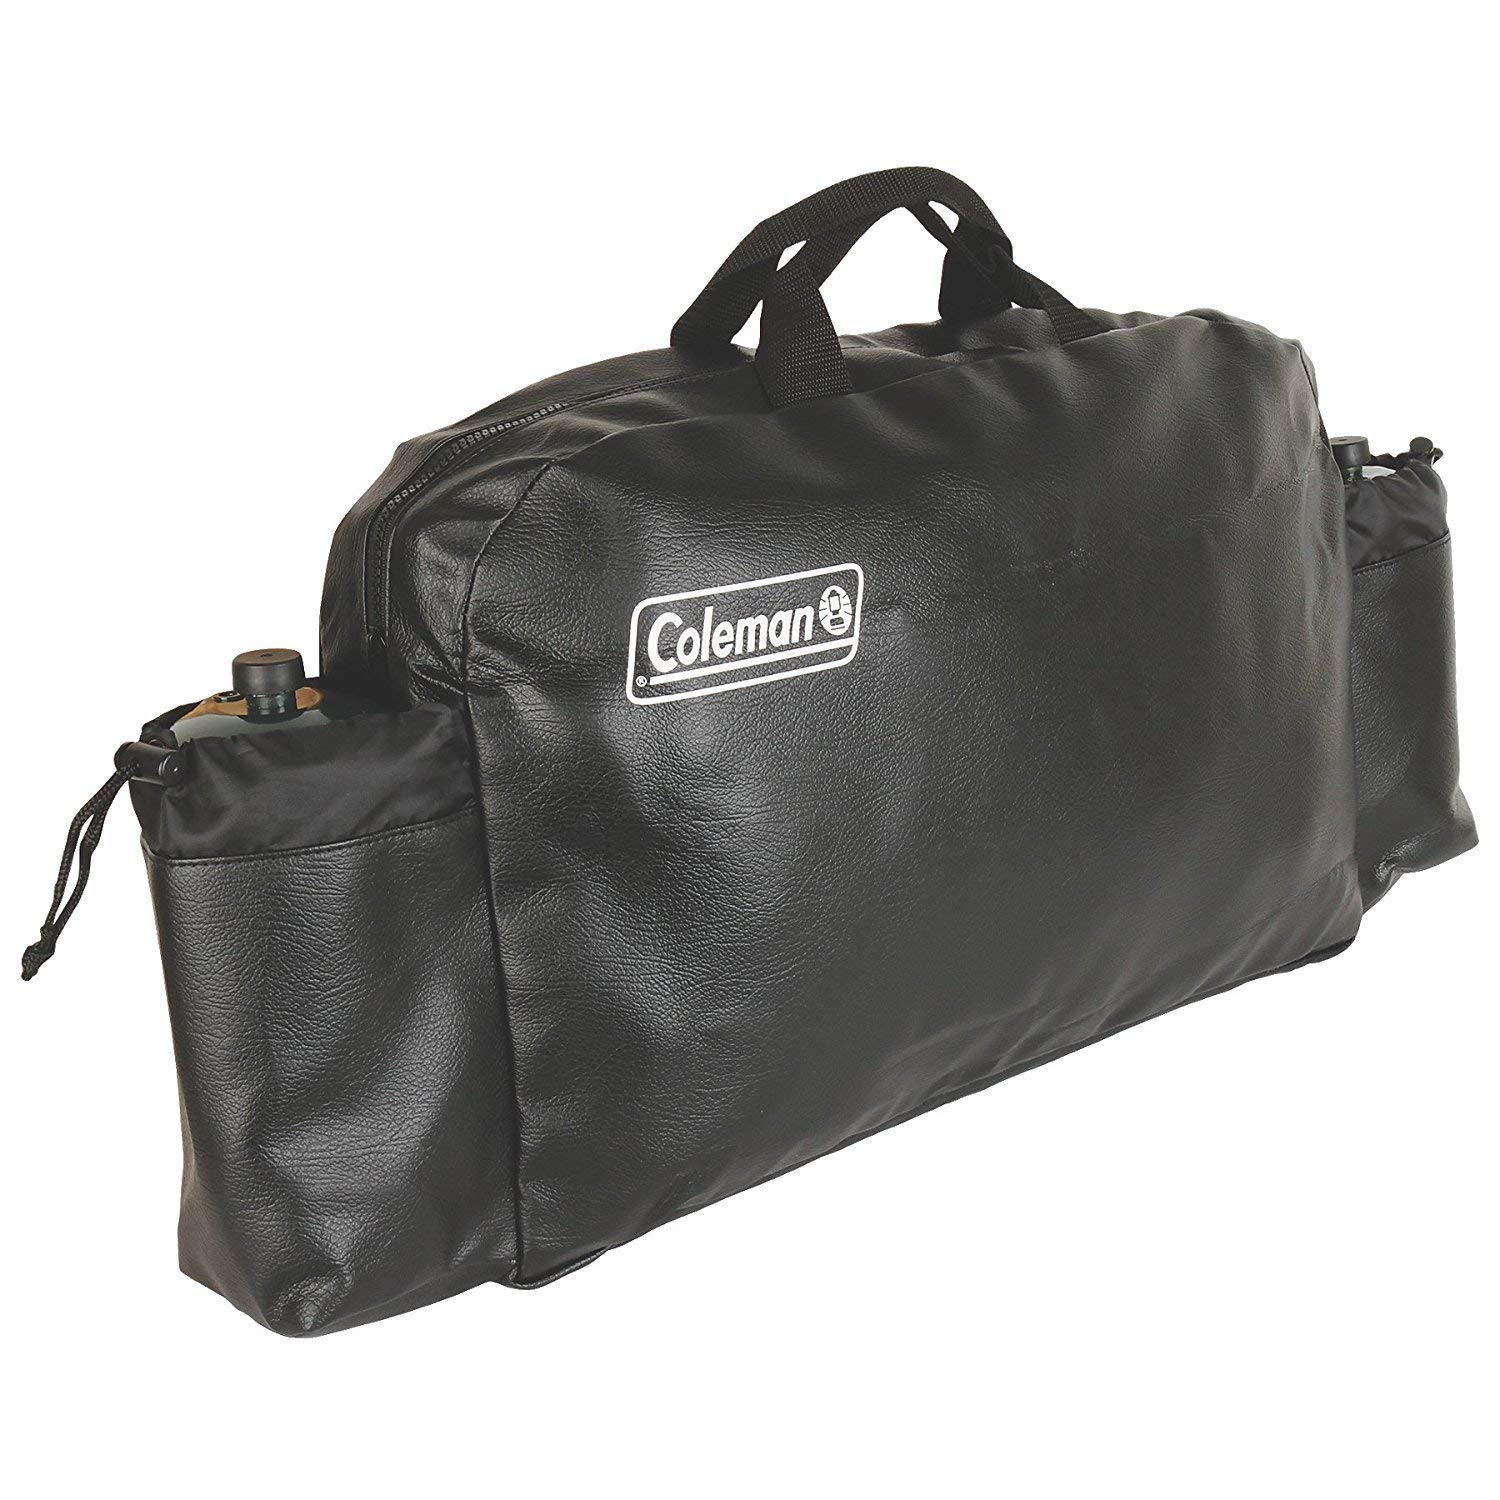 Coleman Camp Stove Carry Case, Medium (1 Pack, N/A) by Coleman